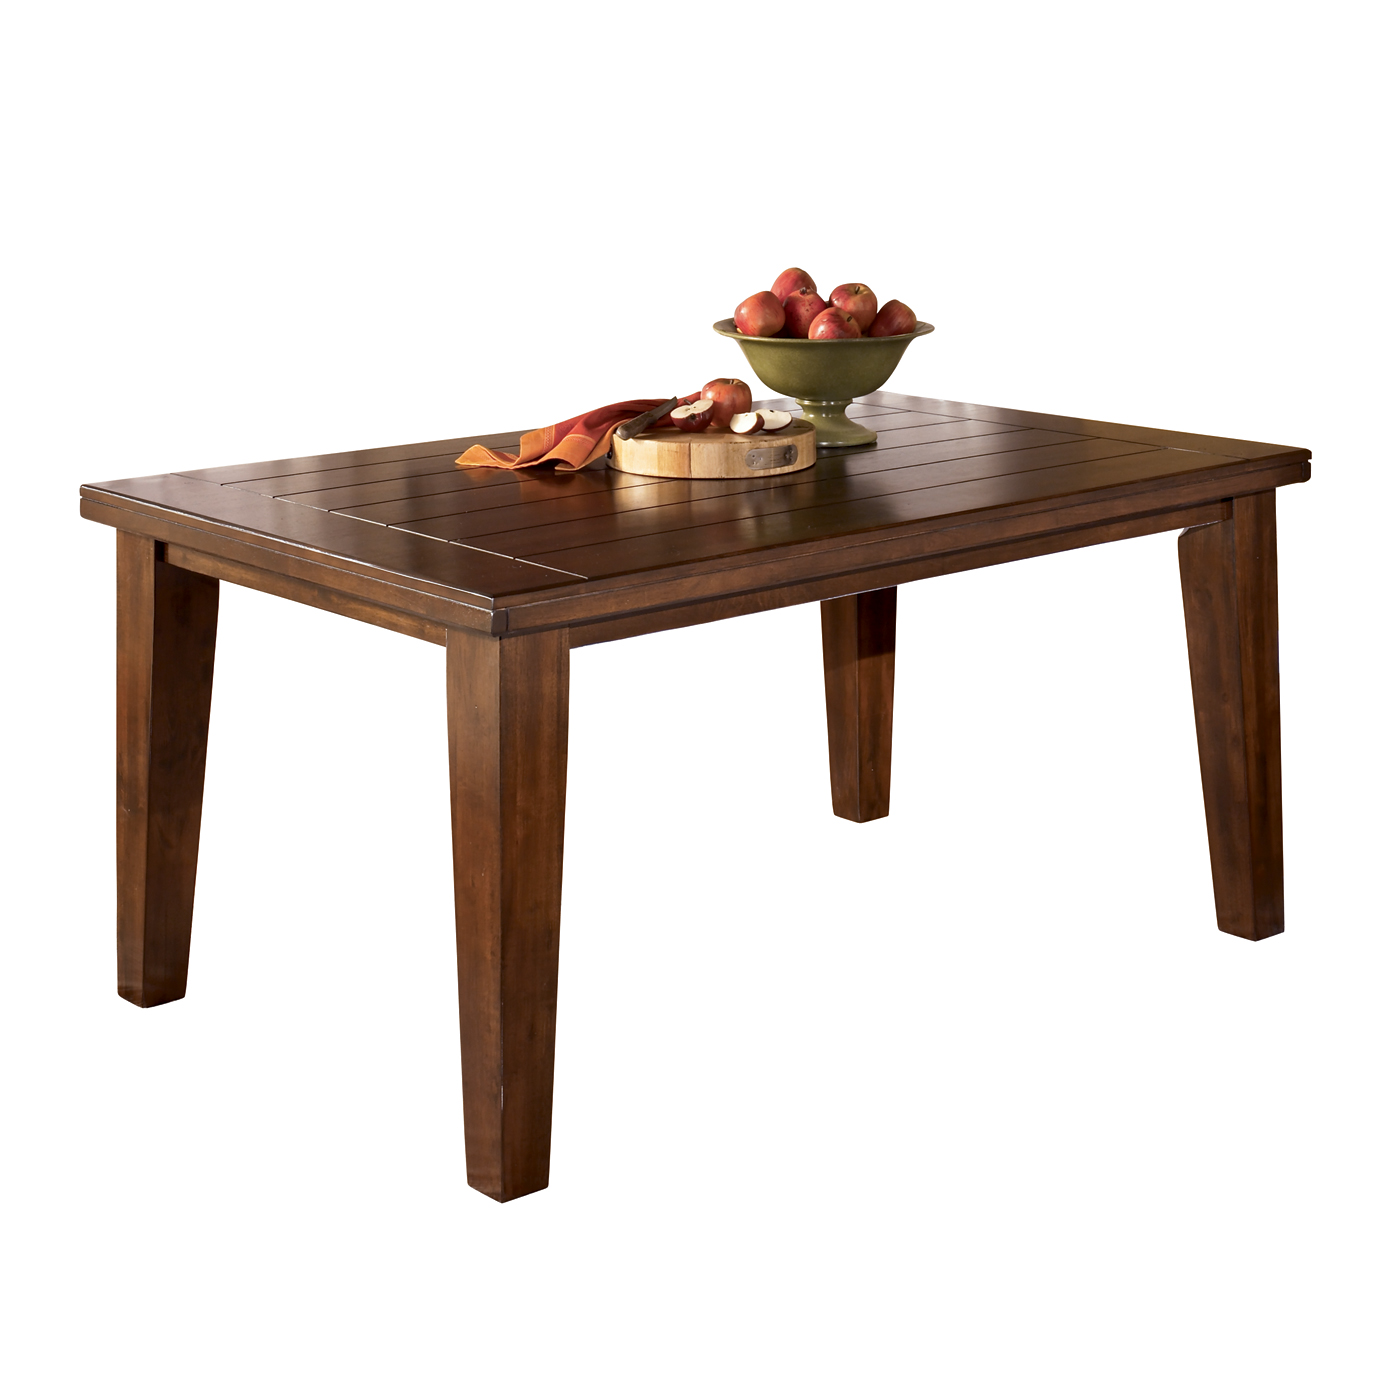 Dining Room Furniture Dallas Tx: Ashley Larchmont Dining Table Dallas TX